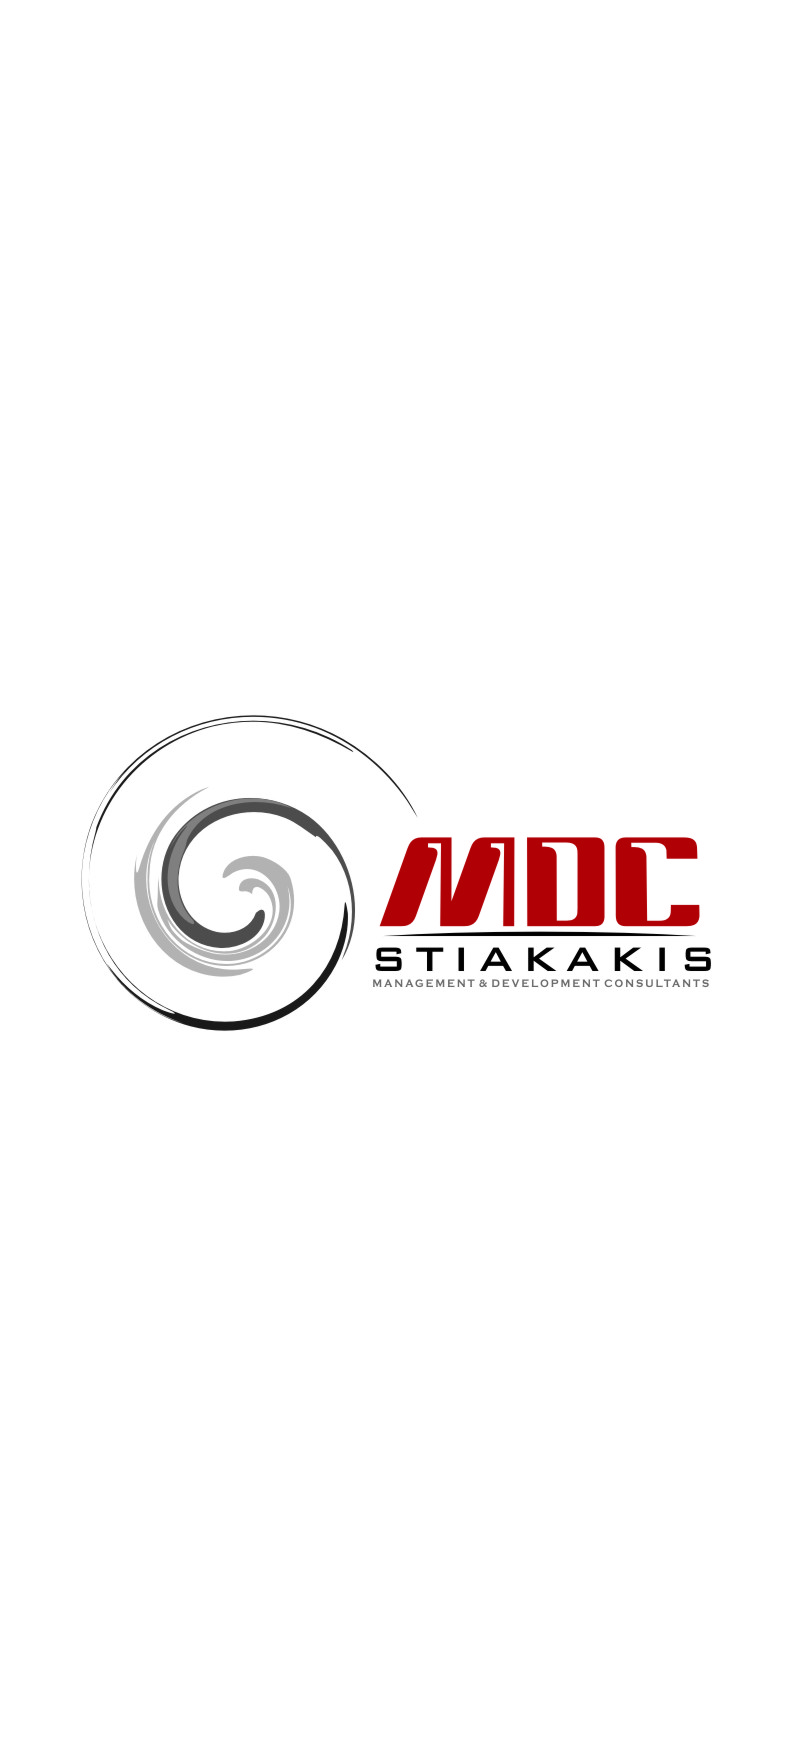 Logo Design by Ngepet_art - Entry No. 93 in the Logo Design Contest Unique Logo Design Wanted for MDC STIAKAKIS.